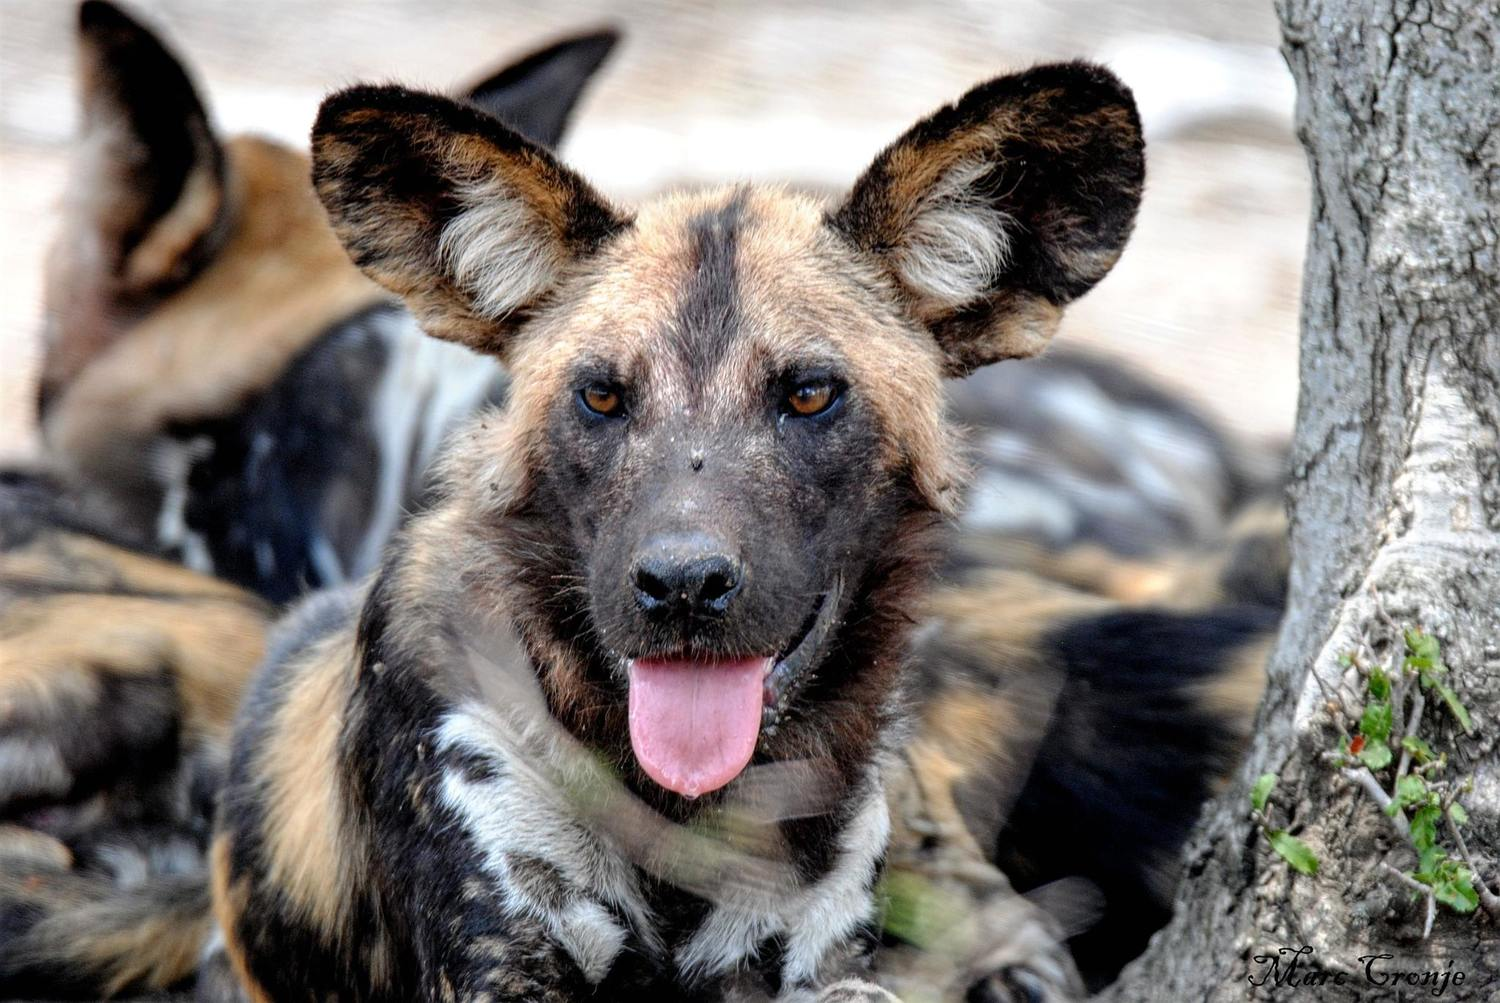 Wildlife Field Guide: African Painted or Wild Dog